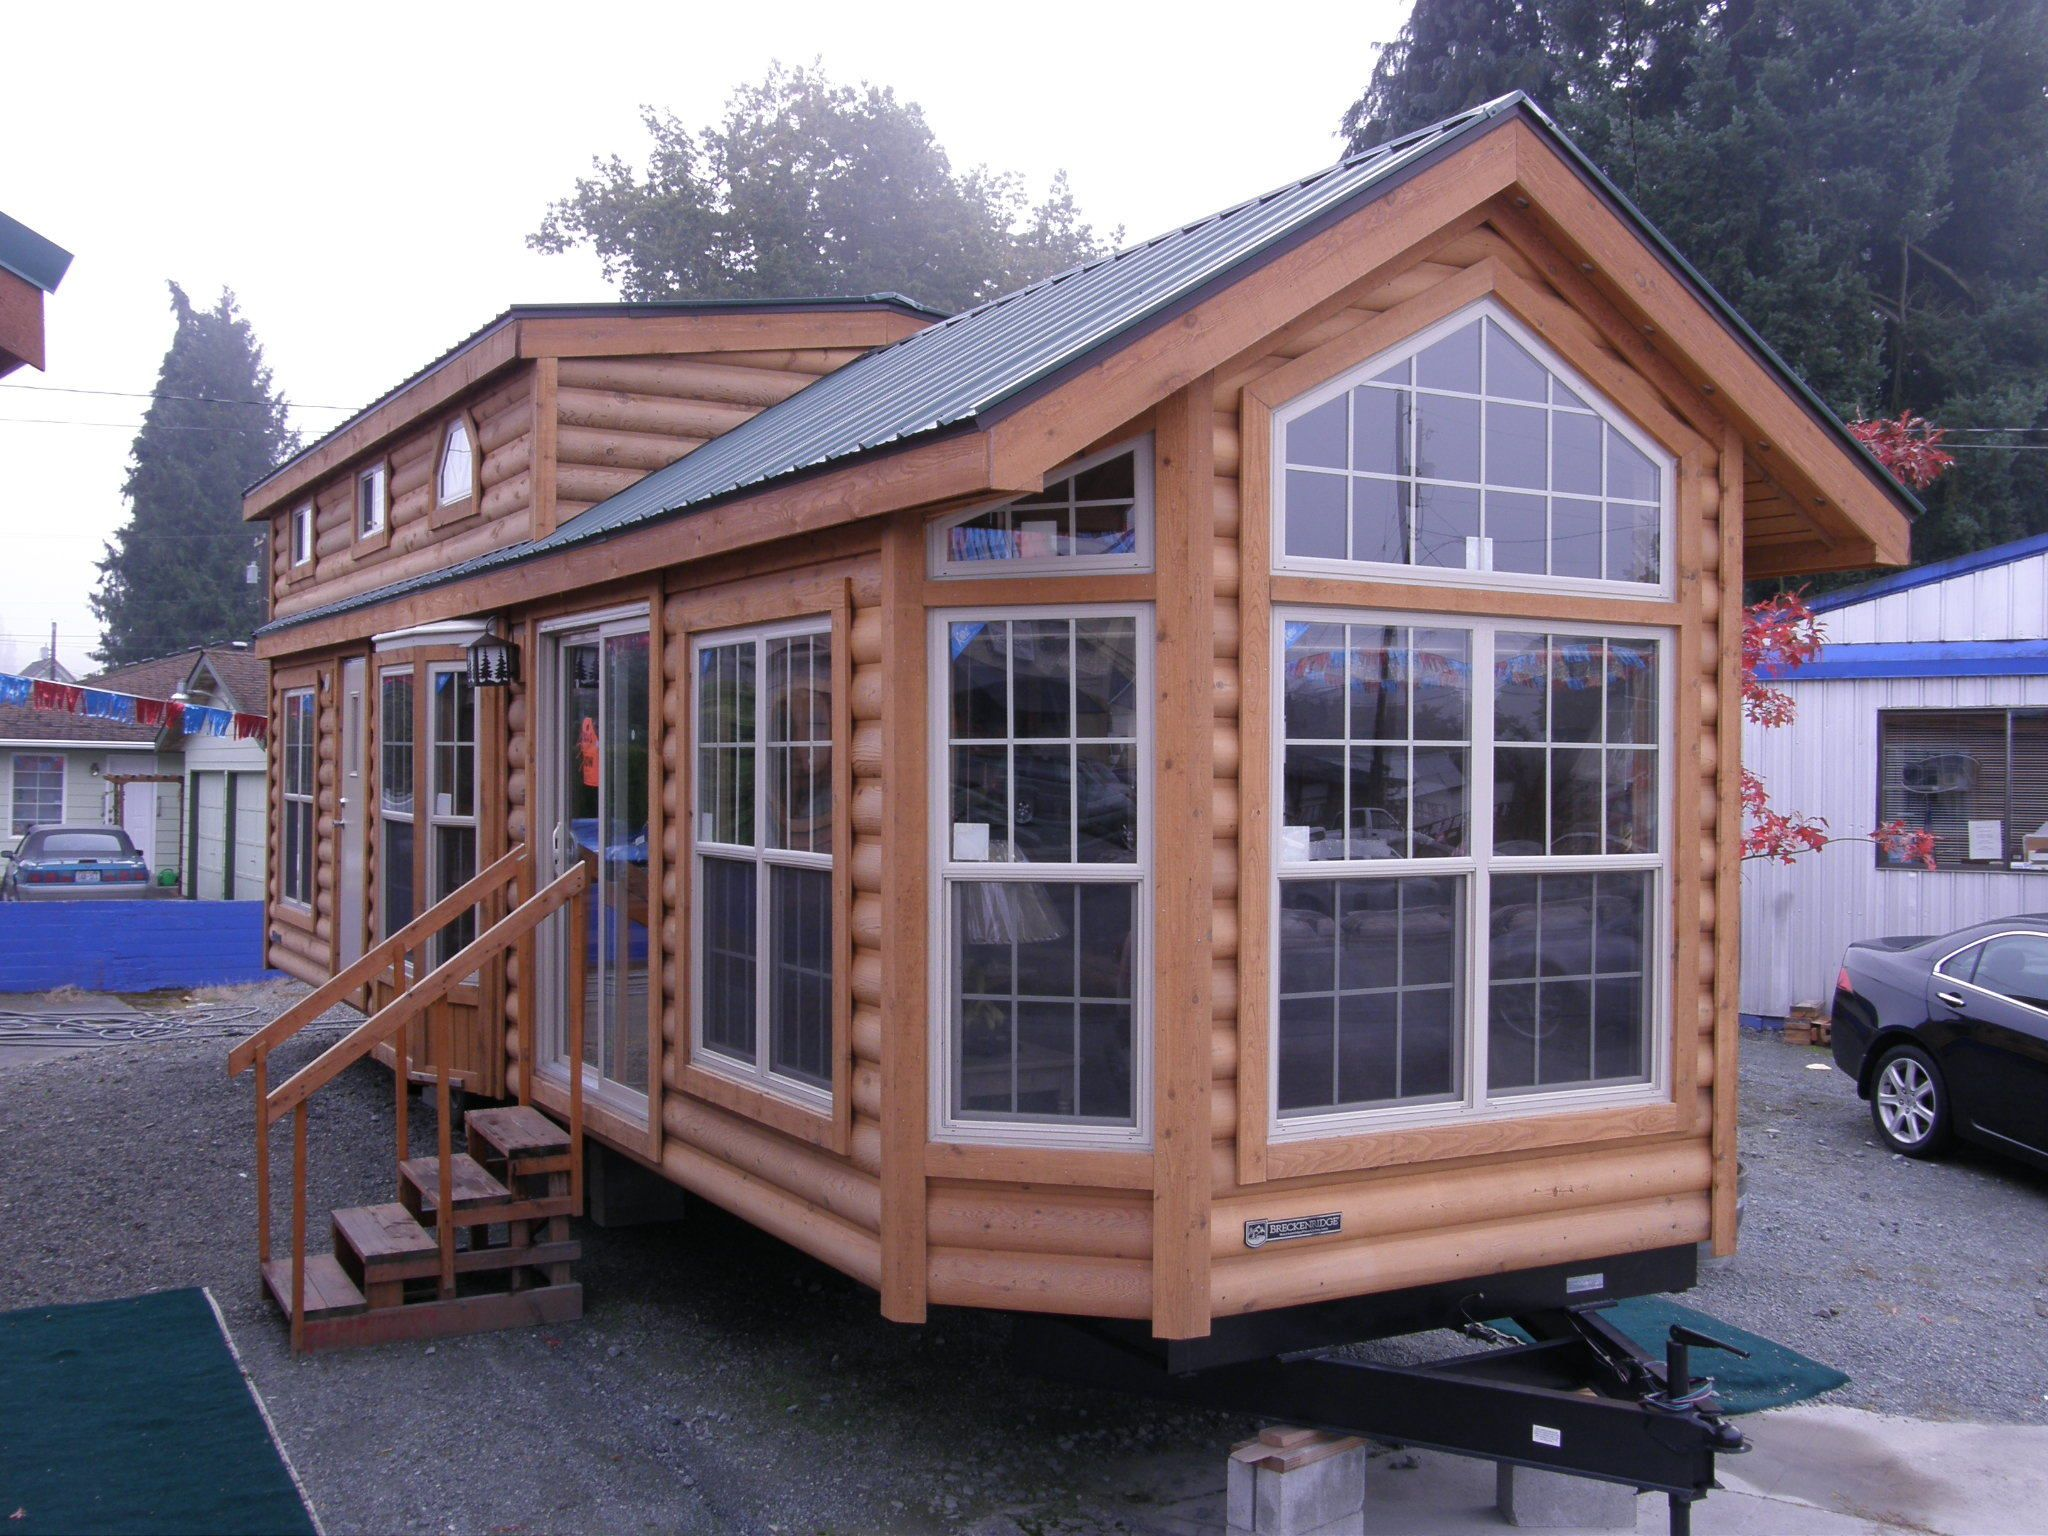 House on wheels craigslist visit open big tiny house on Tiny houses on wheels for sale